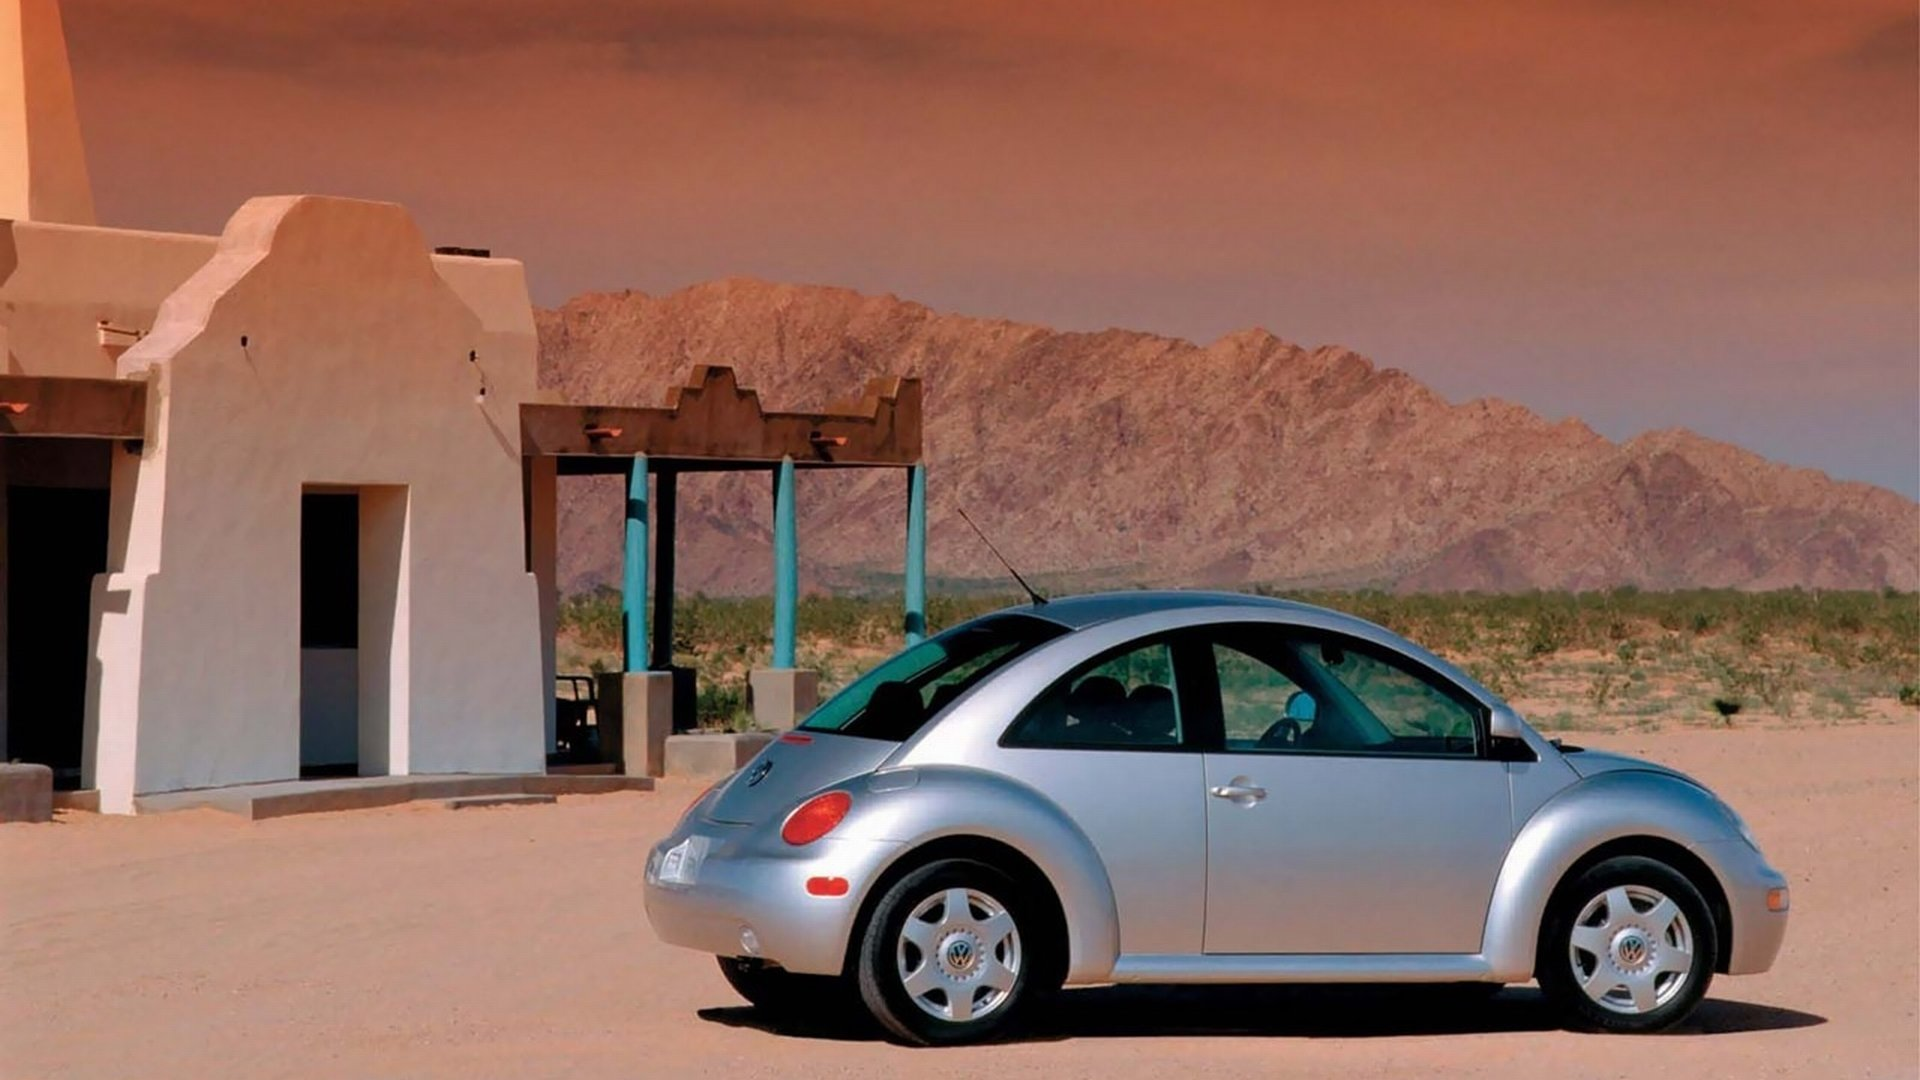 High resolution Volkswagen Beetle full hd 1920x1080 wallpaper ID:117227 for PC